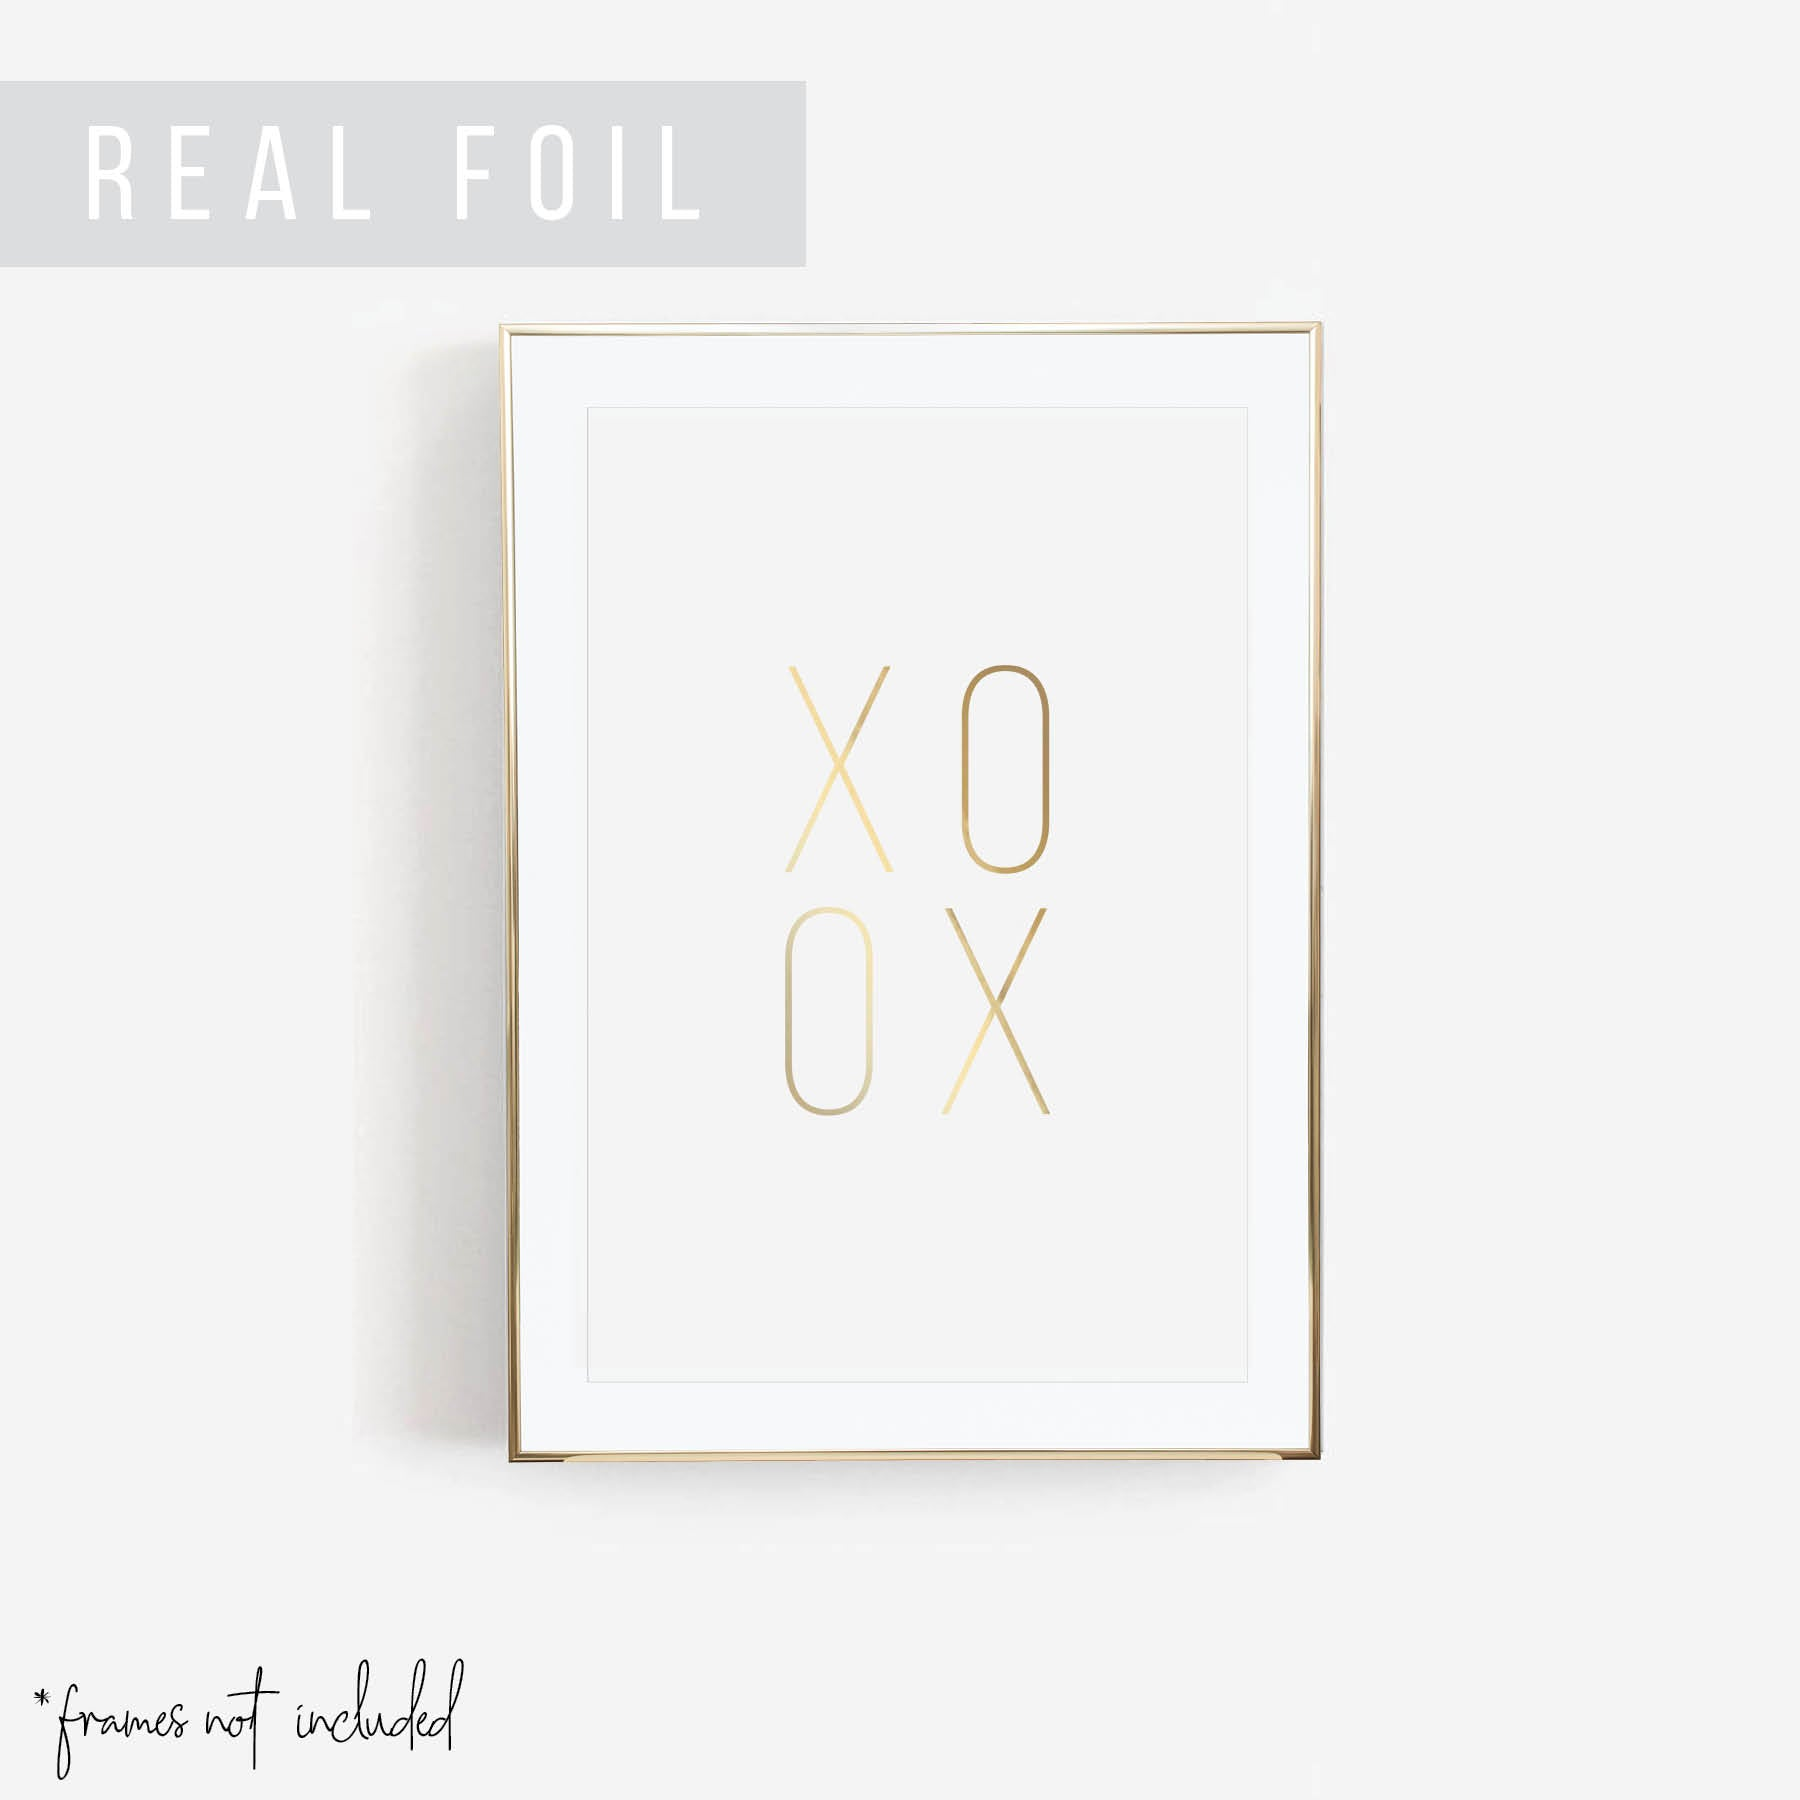 XOXO Foiled Art Print